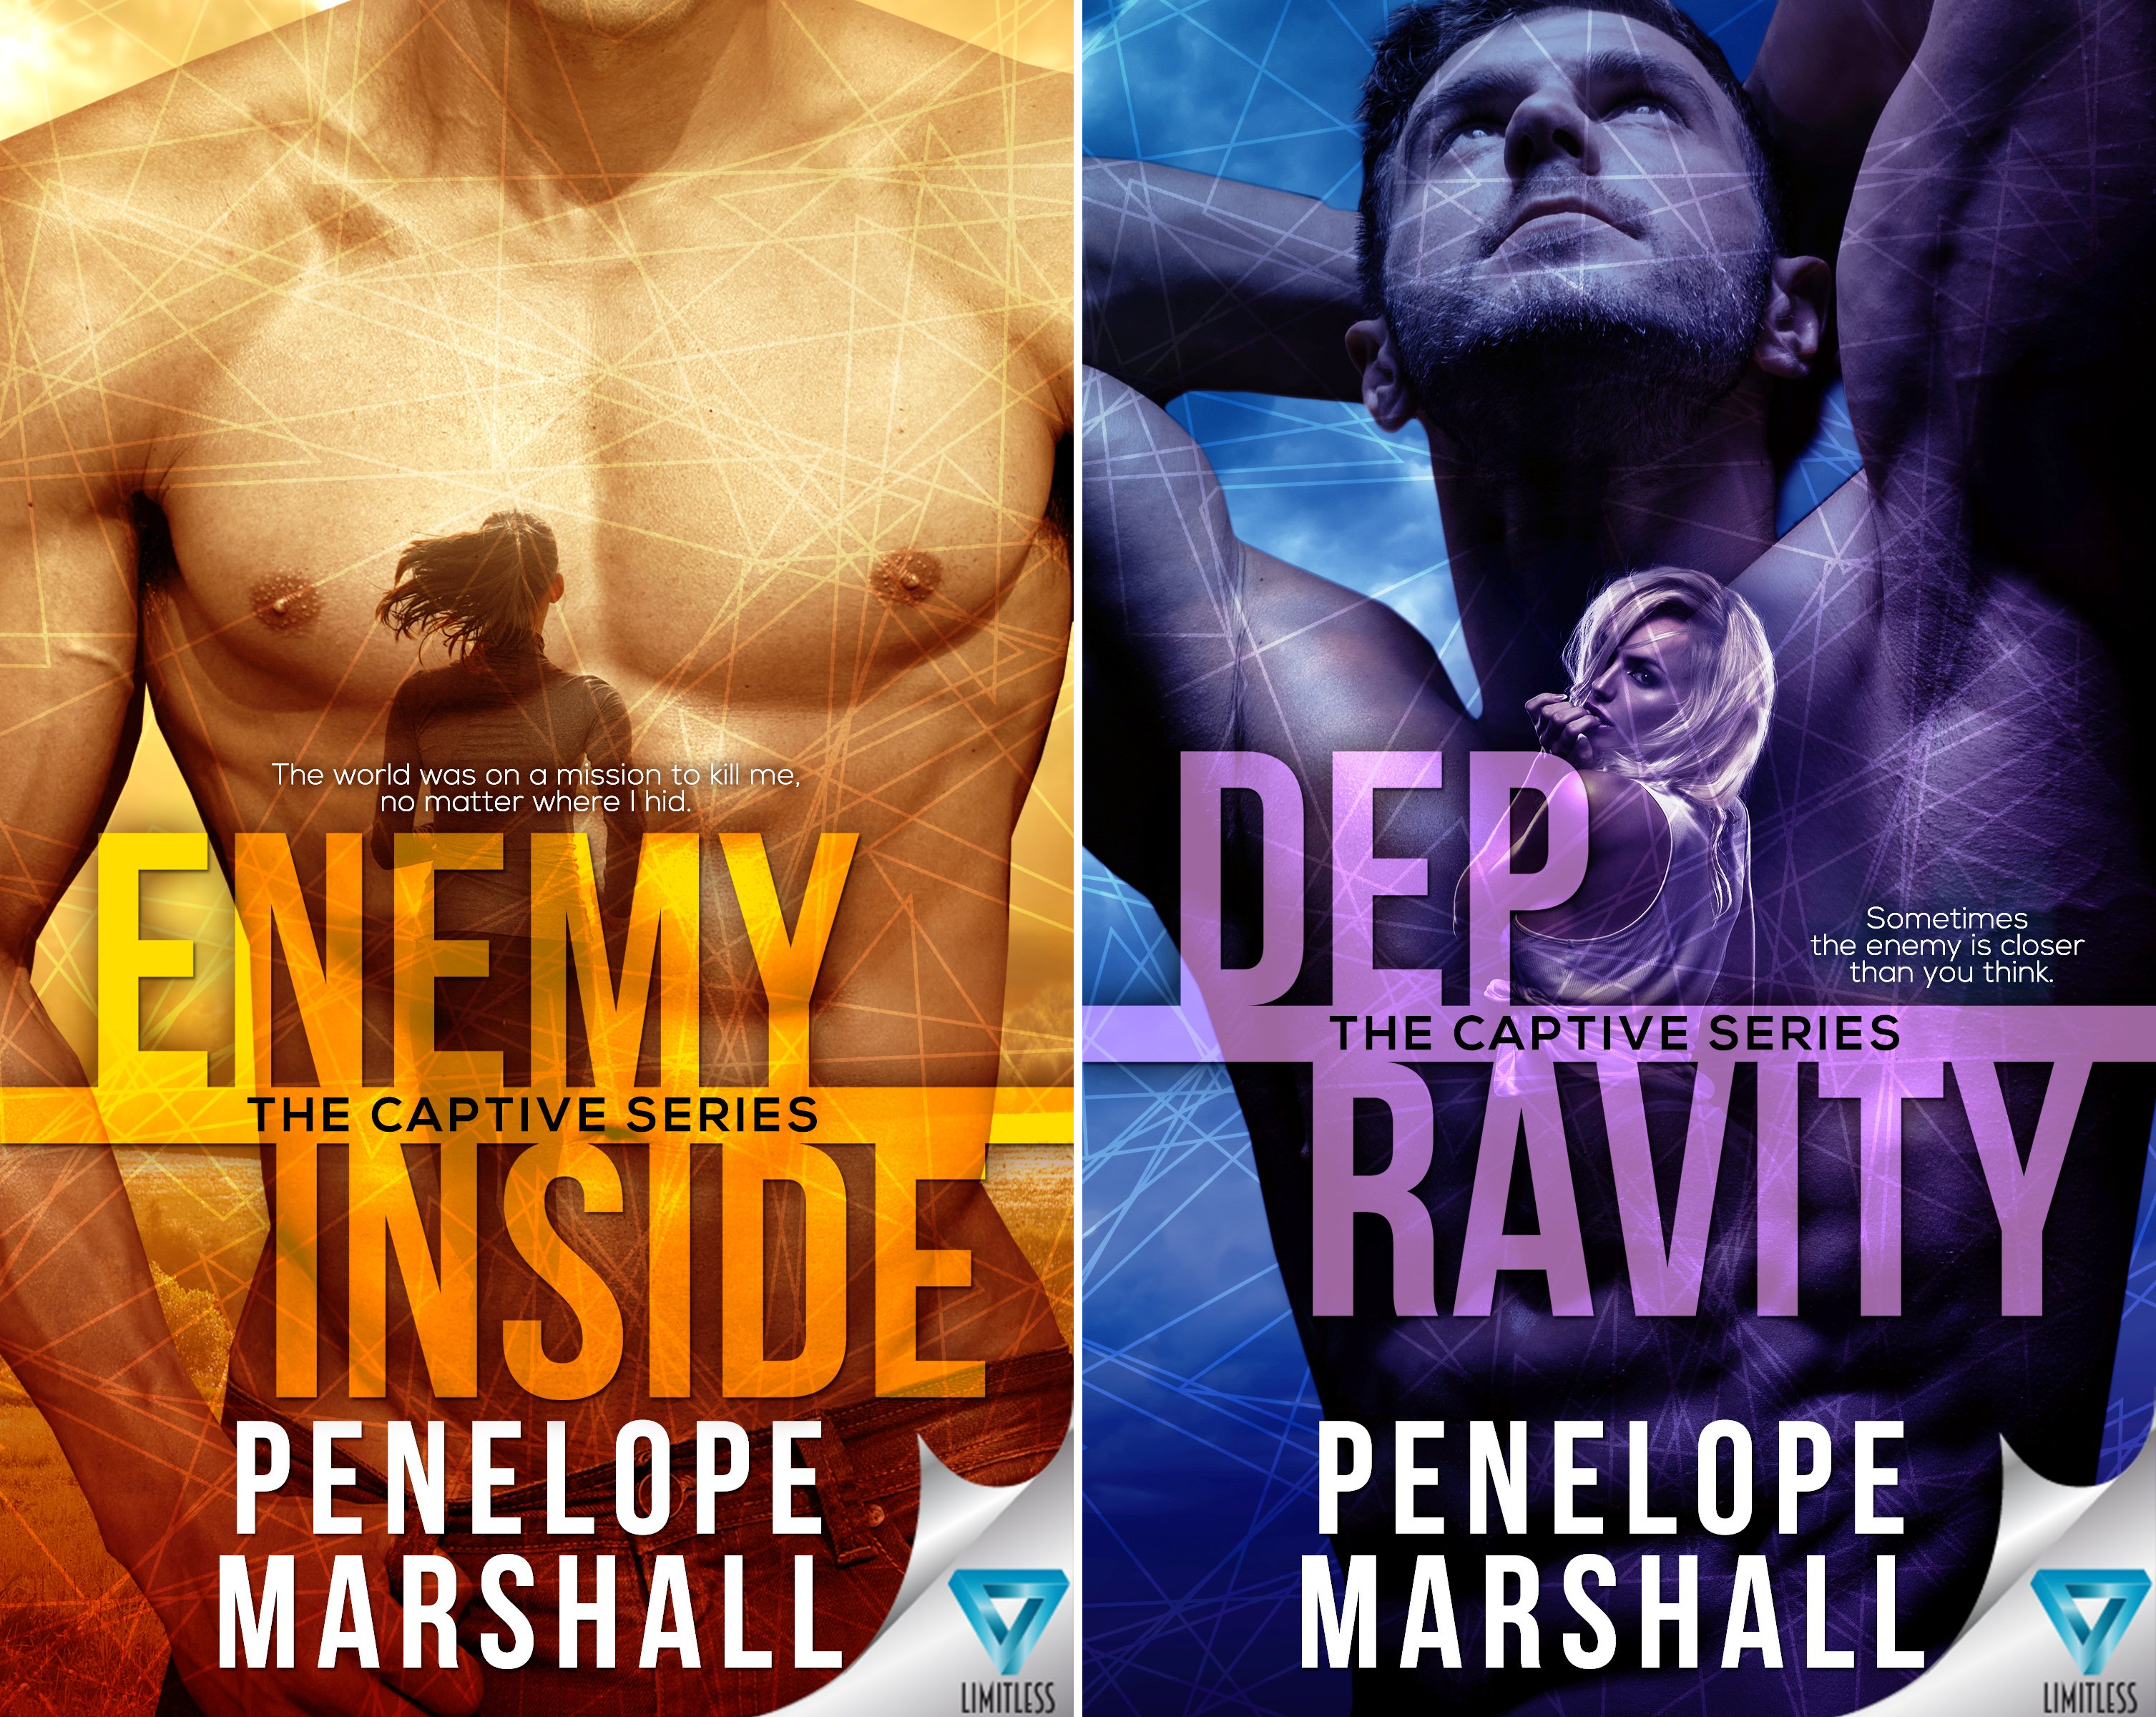 The Captive Series (2 Book Series)